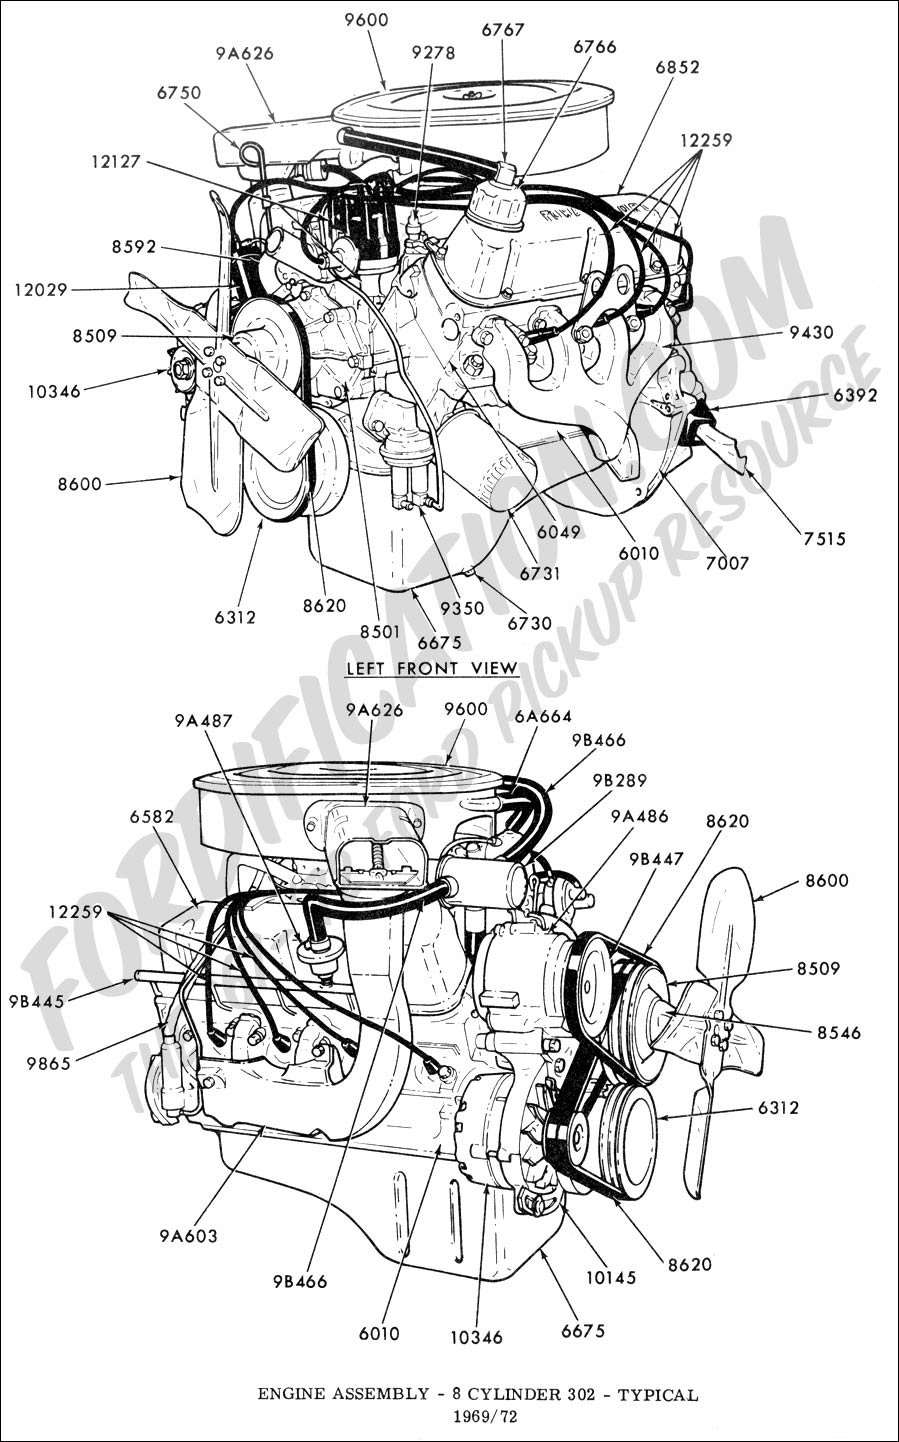 1984 ford 302 engine diagram read all wiring diagram  1984 ford 302 engine diagram #2